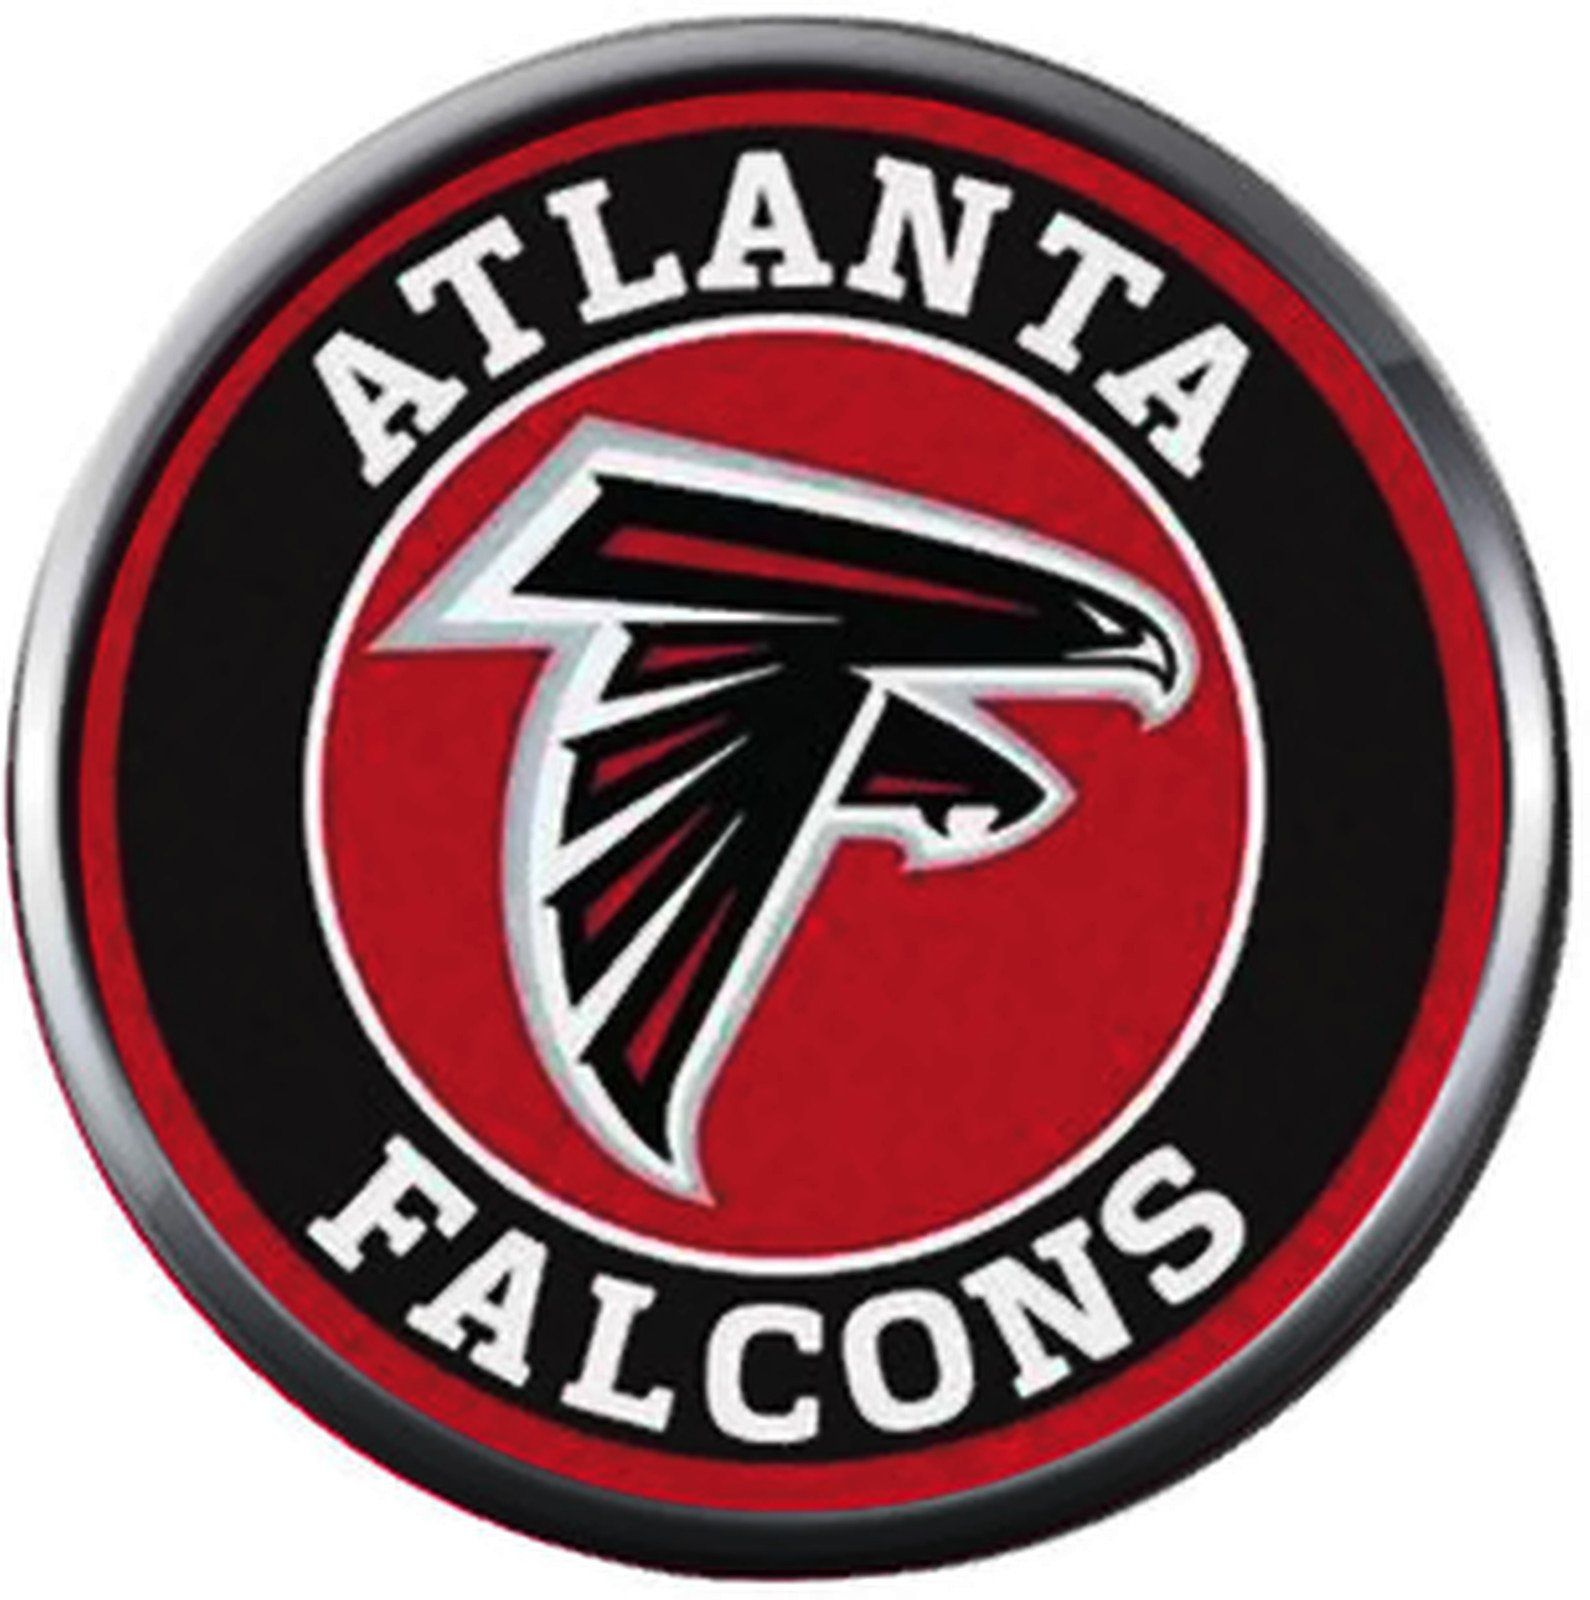 Nfl Atlanta Falcons Circle Logo Football Game Lovers Team Spirit 18mm 20mm Fashion Jewelry Snap Charm Atlanta Falcons Logo Atlanta Falcons Atlanta Falcons Jersey